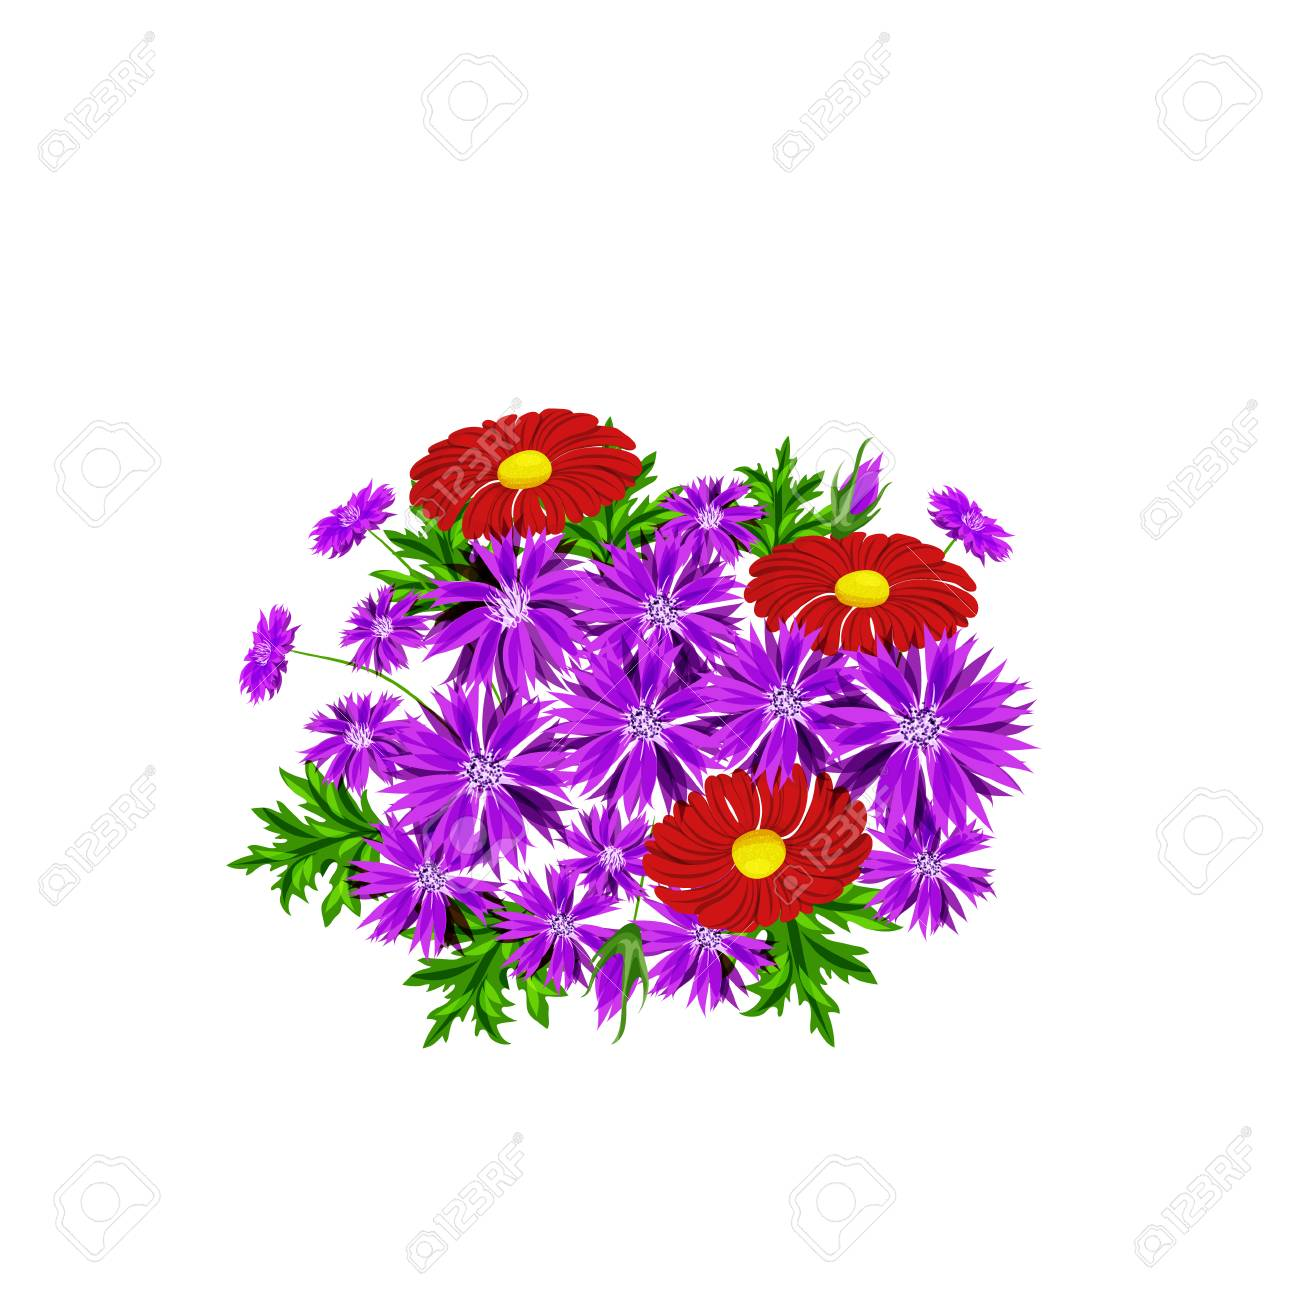 Vector, Bouquet Of Flowers For The Design Of Cards, Invitations ...